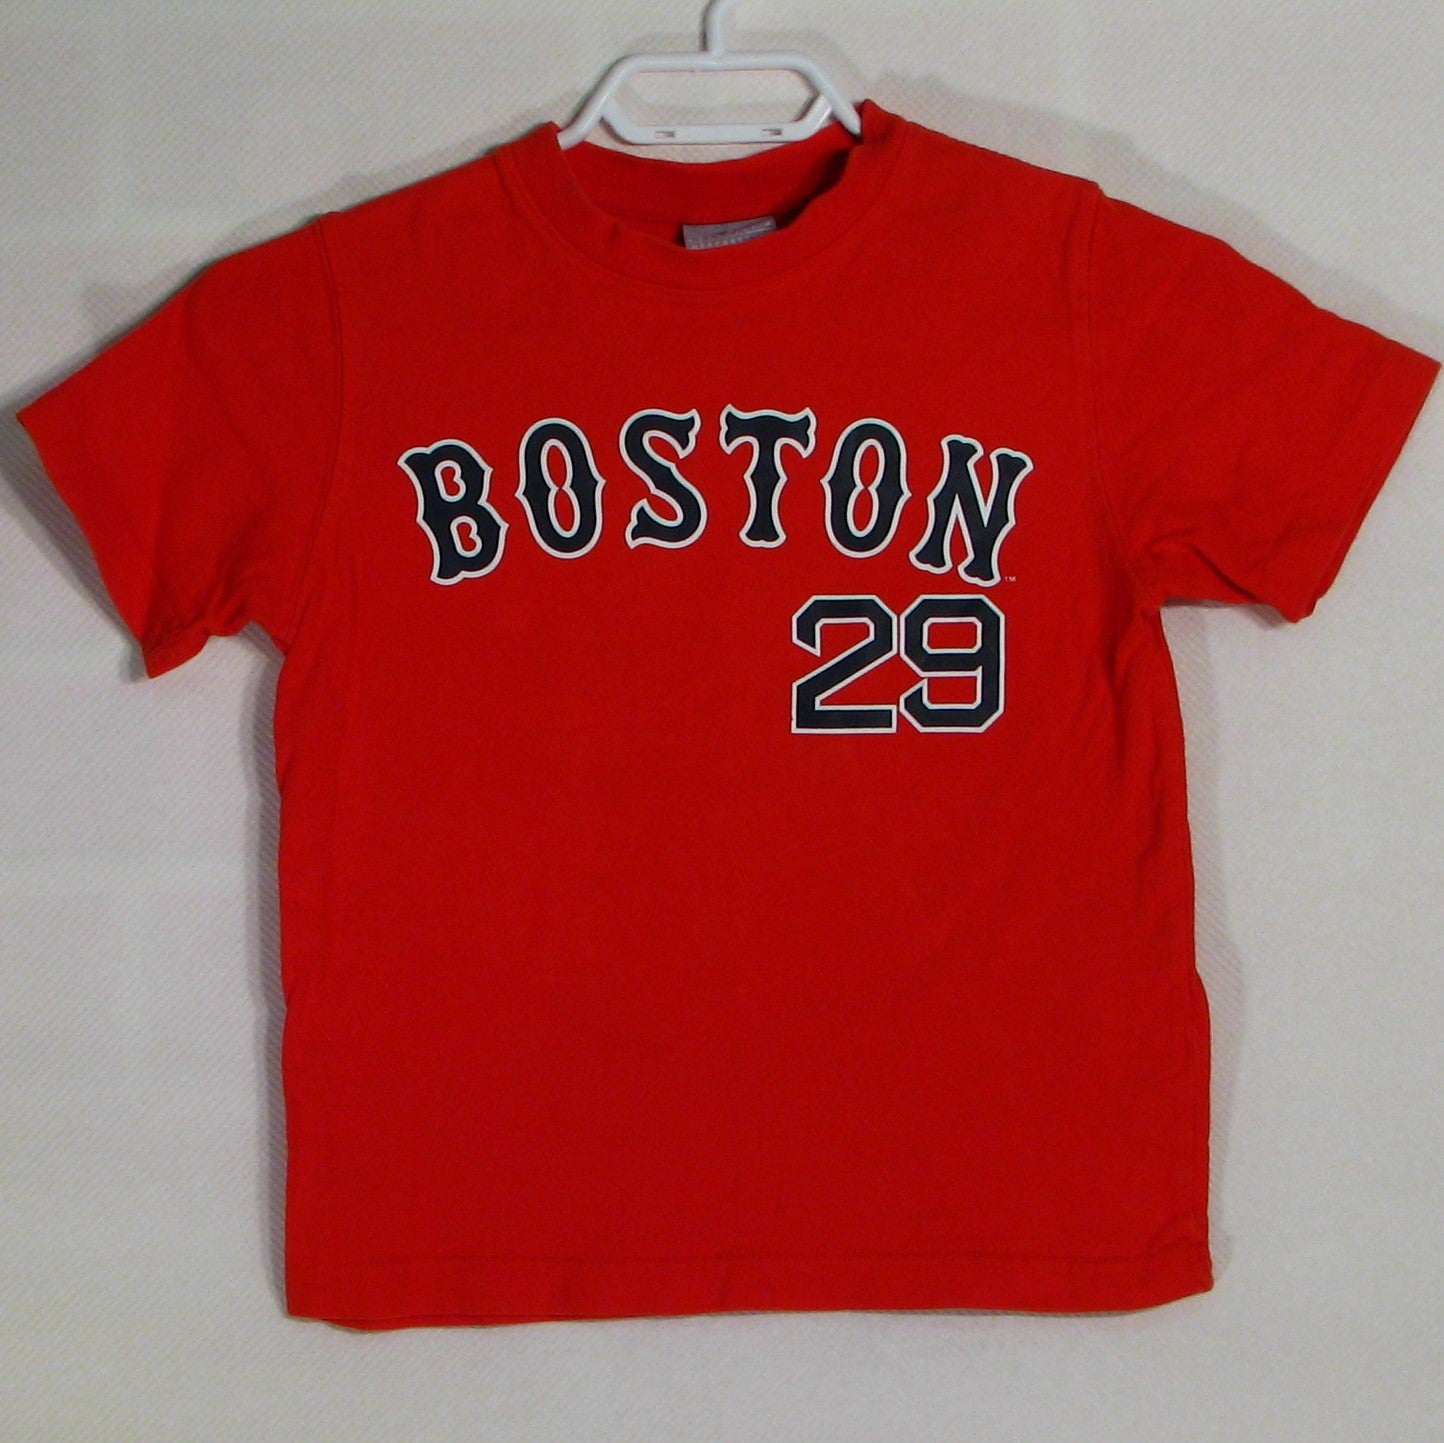 Boston Red Sox Beltre # 29 T-Shirt Toddler